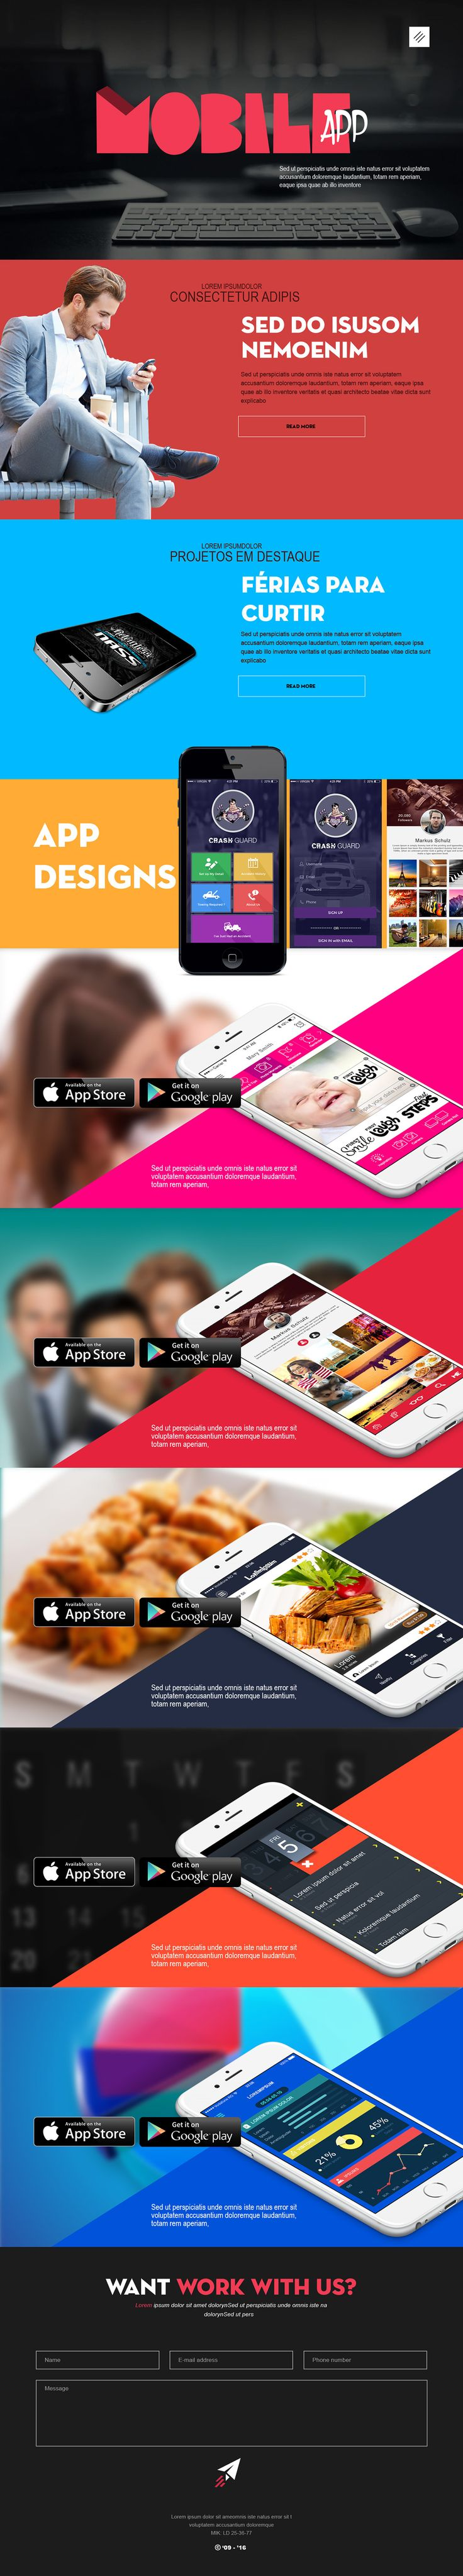 """Check out my @Behance project: """"Mobile Application Website Design"""" https://www.behance.net/gallery/43411279/Mobile-Application-Website-Design"""